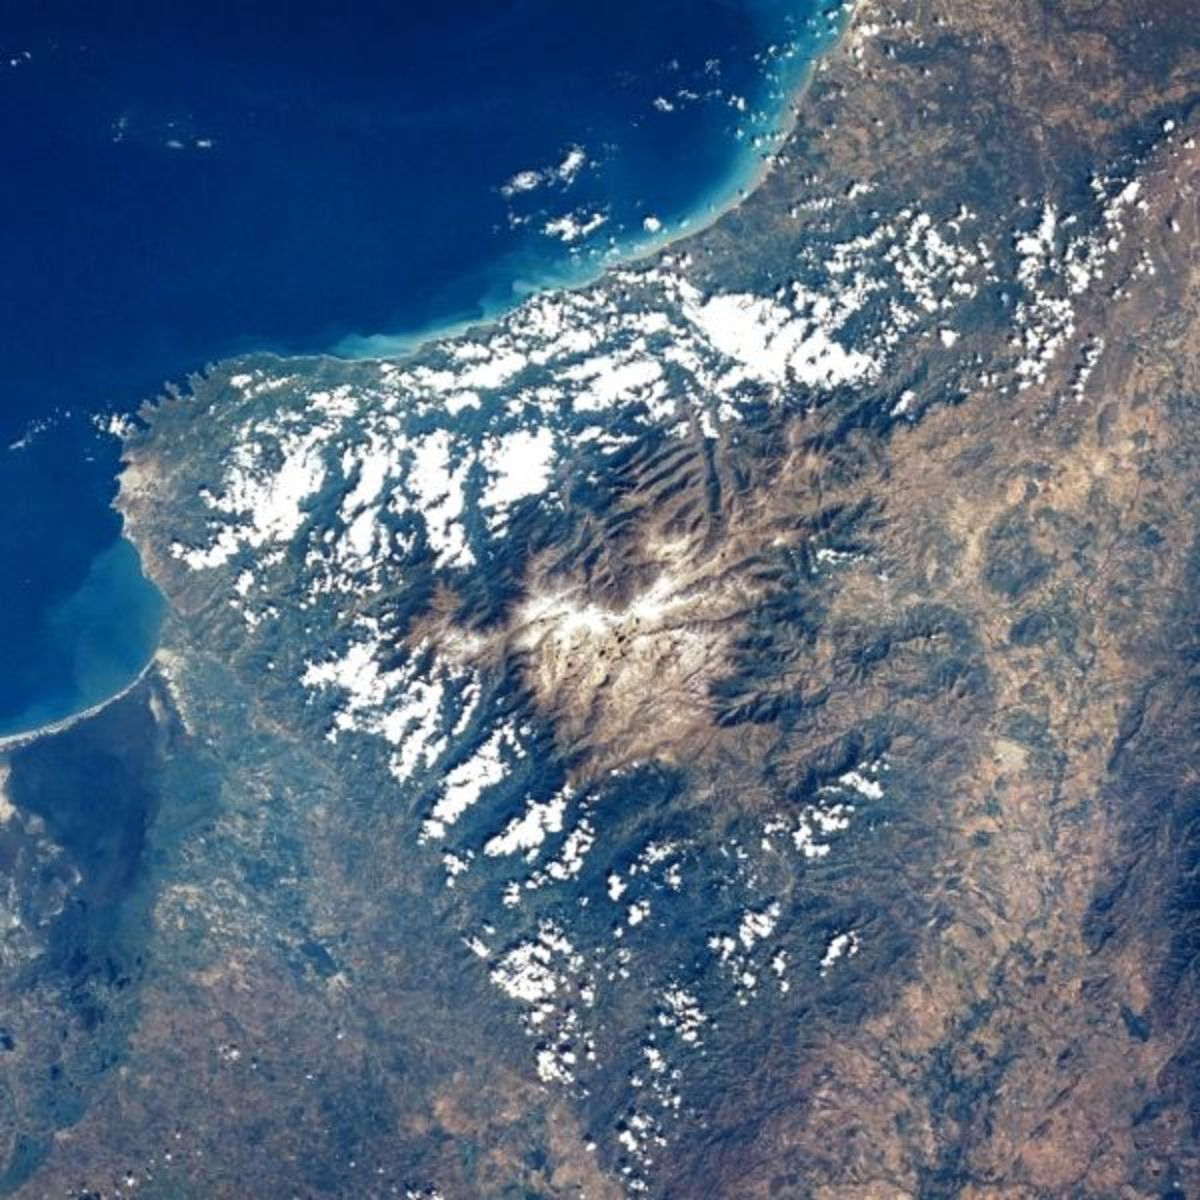 Sierra Nevada de Santa Marta filmed from space